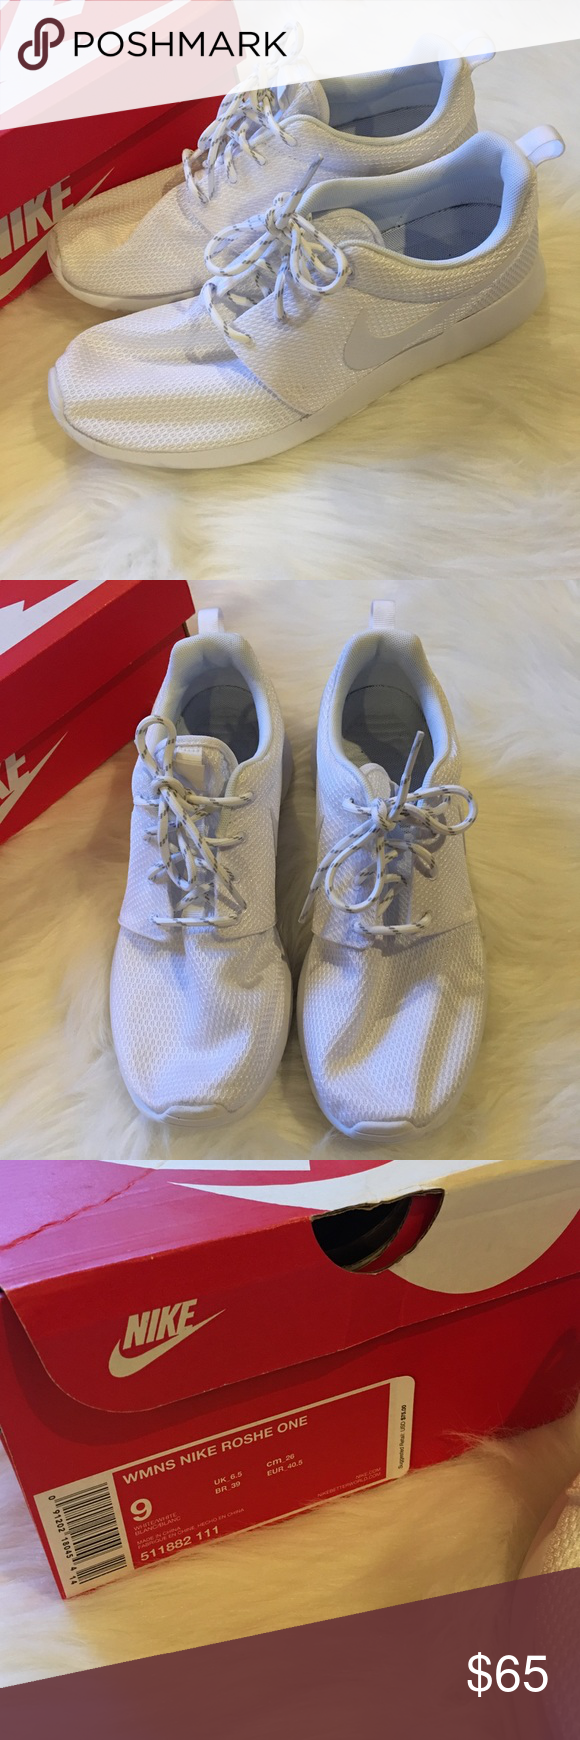 All White Nike Roshe Ones Brand new with box! Never been worn! Nike Shoes Athletic Shoes